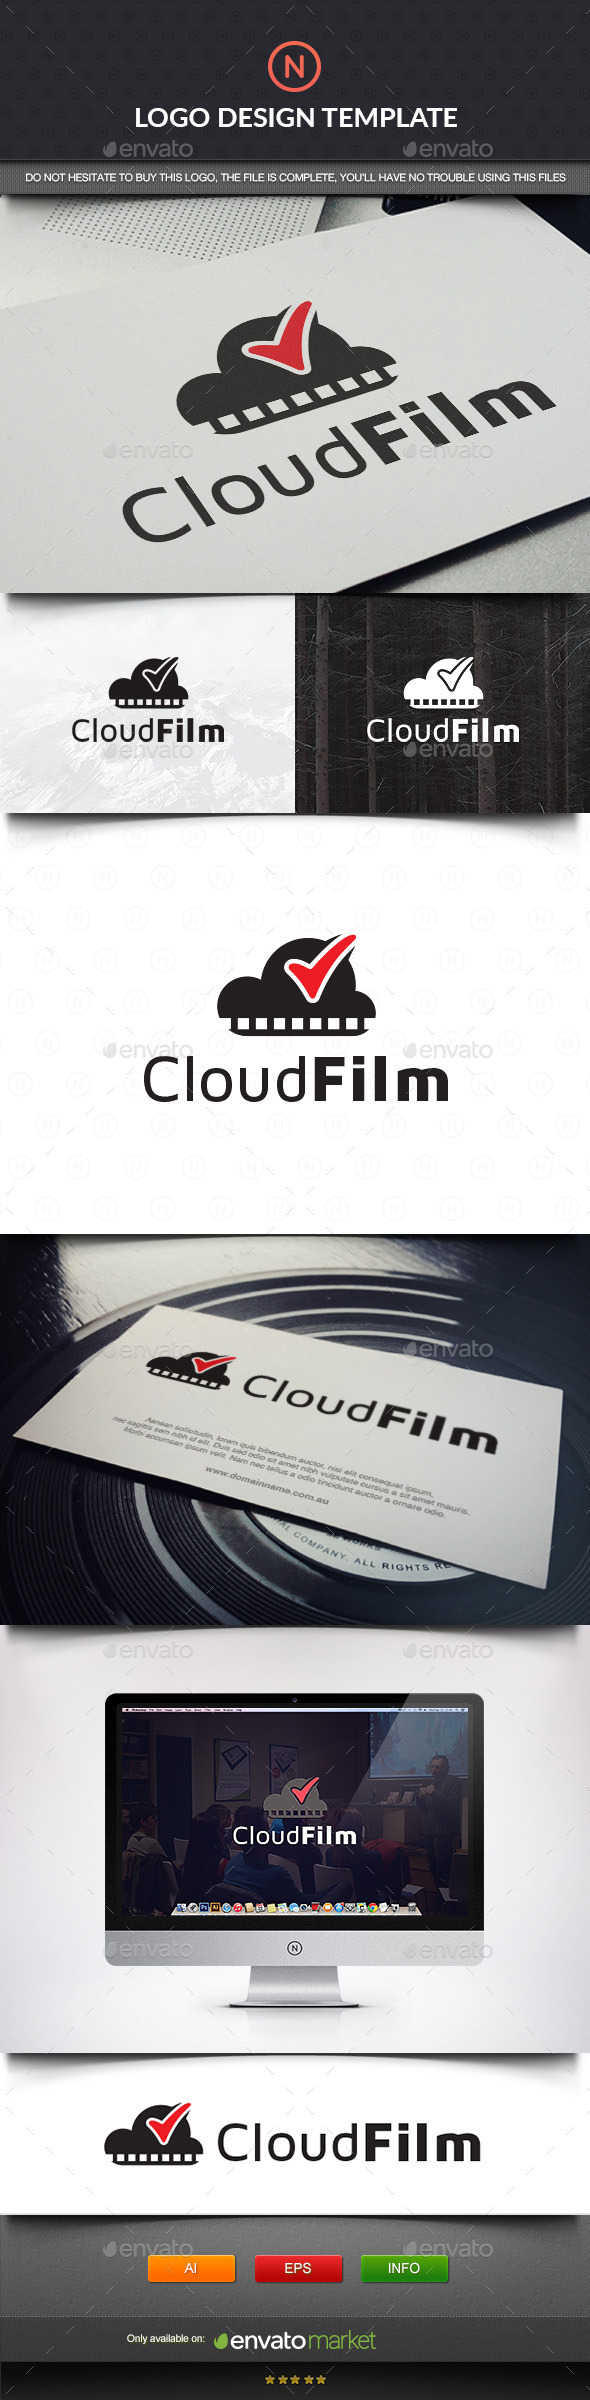 GraphicRiver Cloud Film Check 11403238